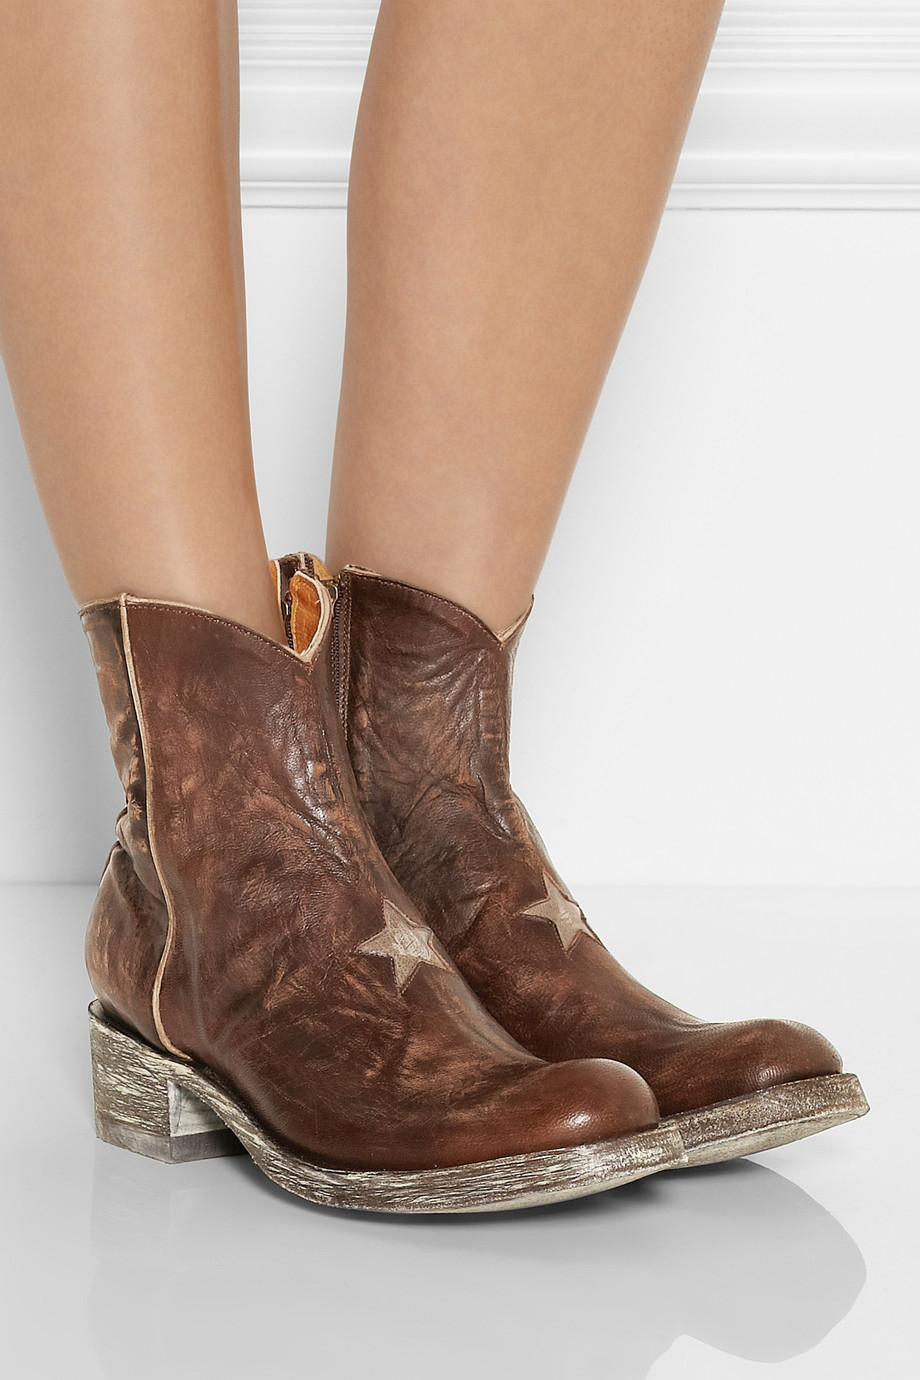 Mexicana Star Distressed Leather Ankle